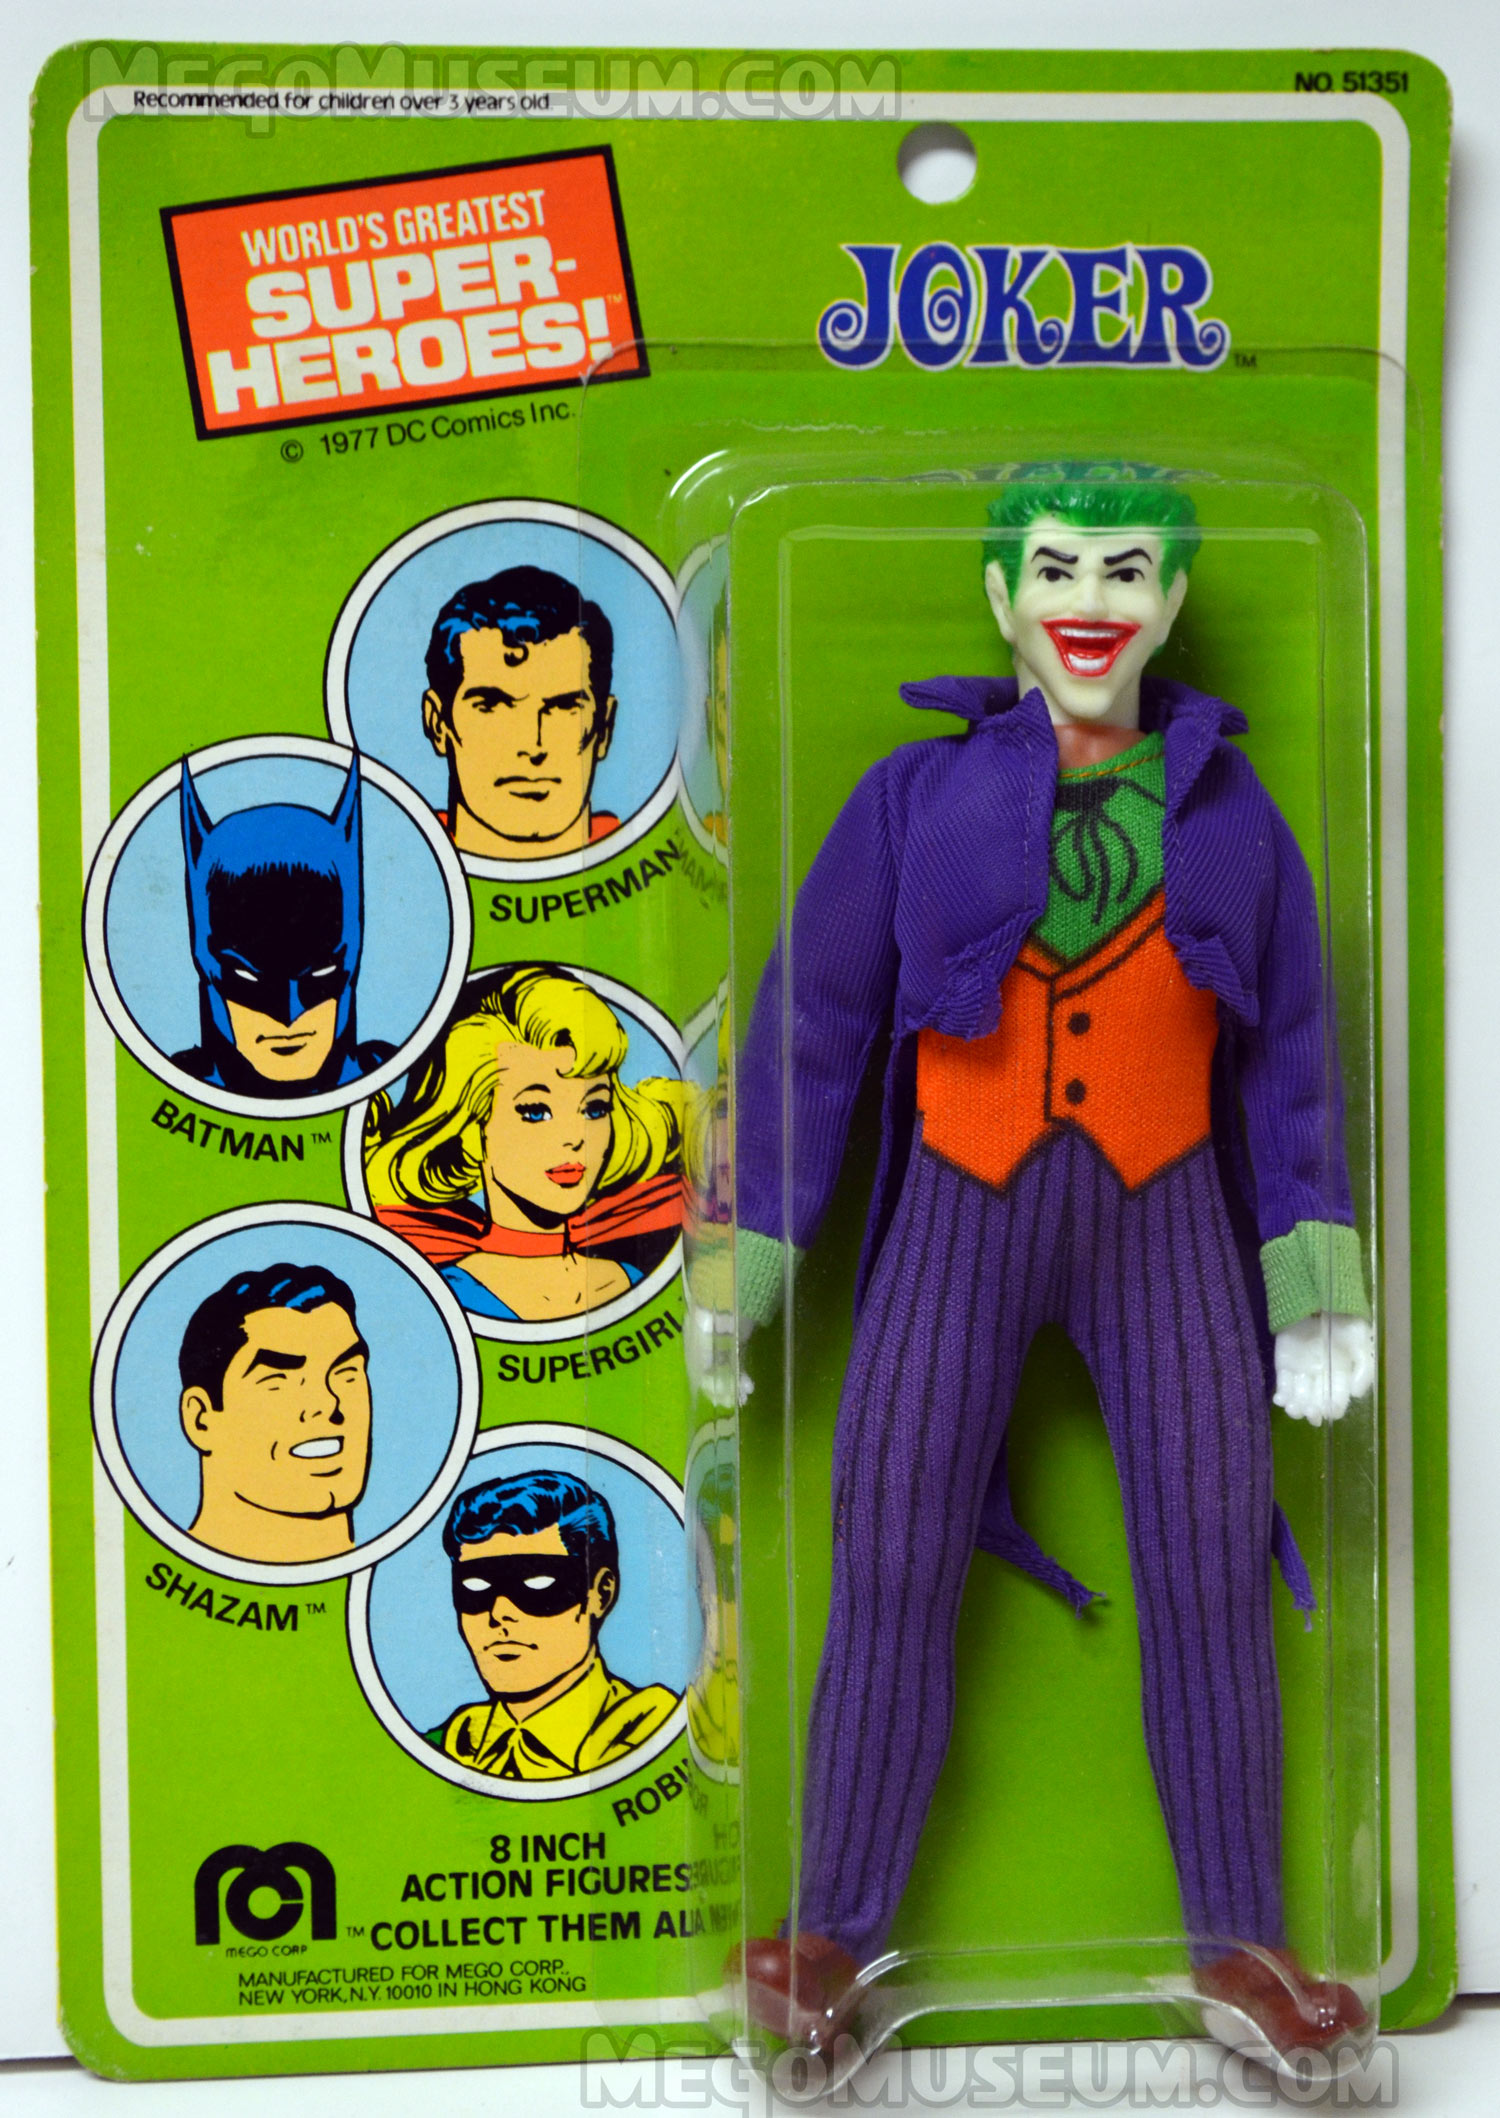 Card for 1977 copyrighted US carded Mego Joker action figure